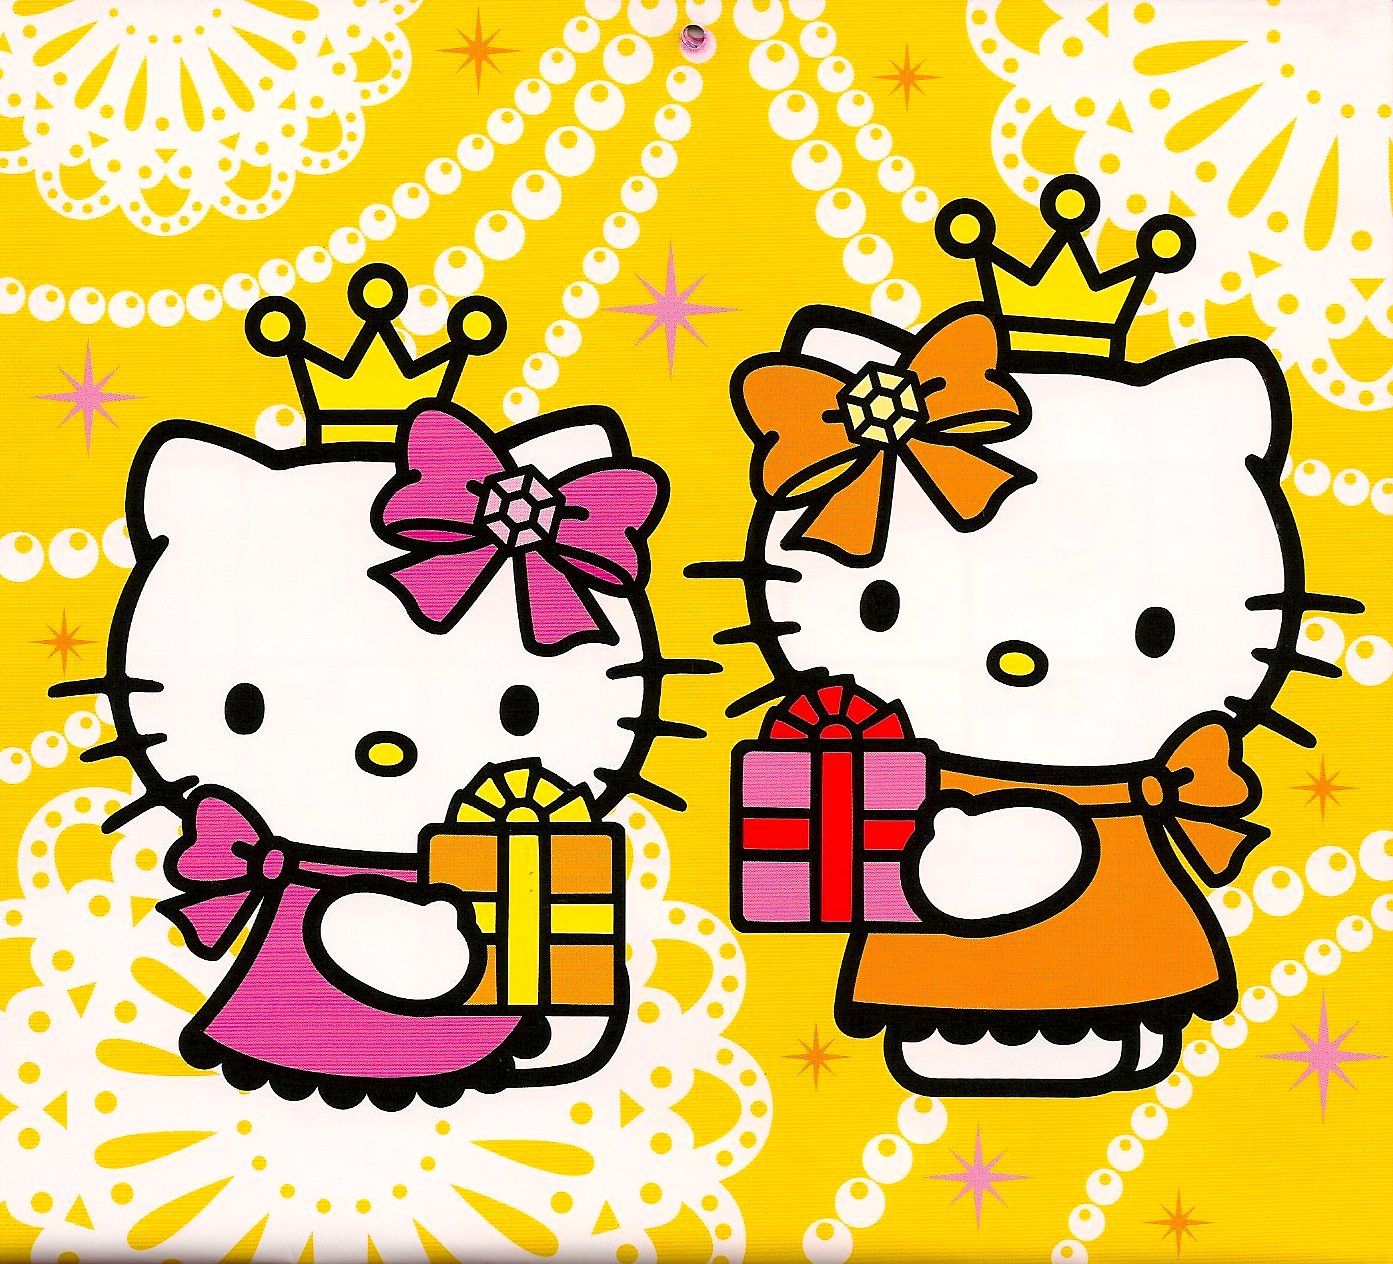 Amazing Wallpaper Hello Kitty Princess - ce36d95fc73950bc61ba6fa94a98cec4  Pictures_207843.png